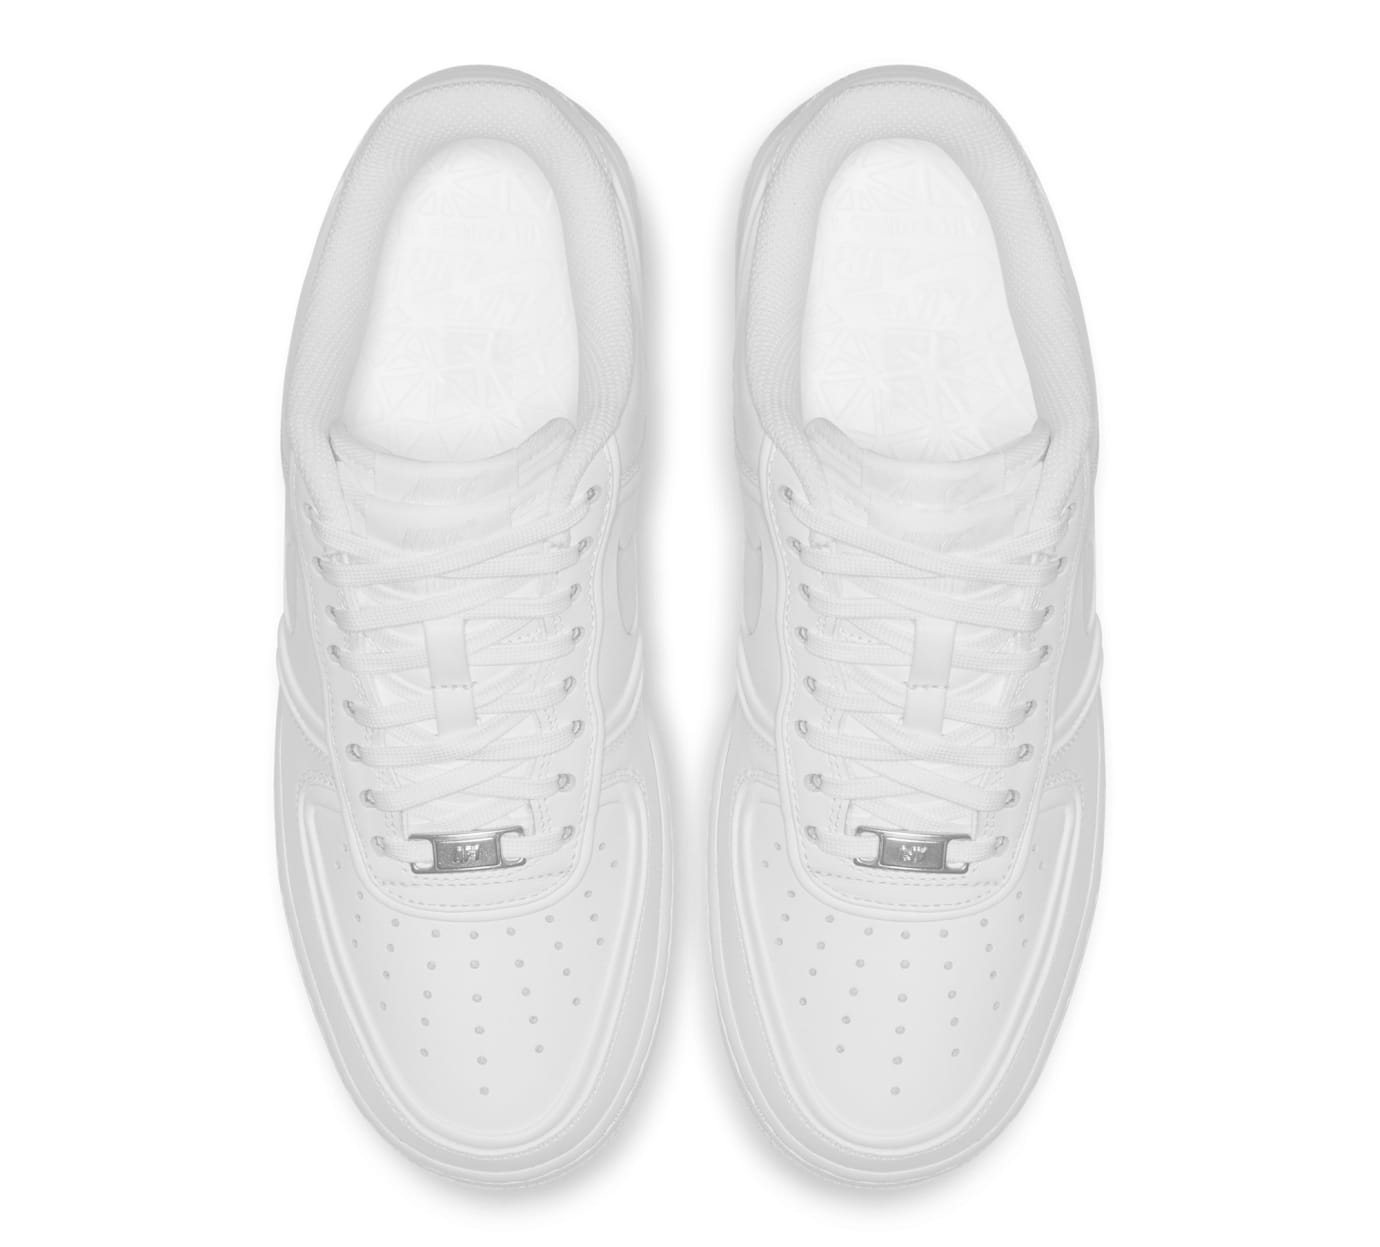 John Elliott x Nike Air Force 1 Low AO9291-100 (Top)